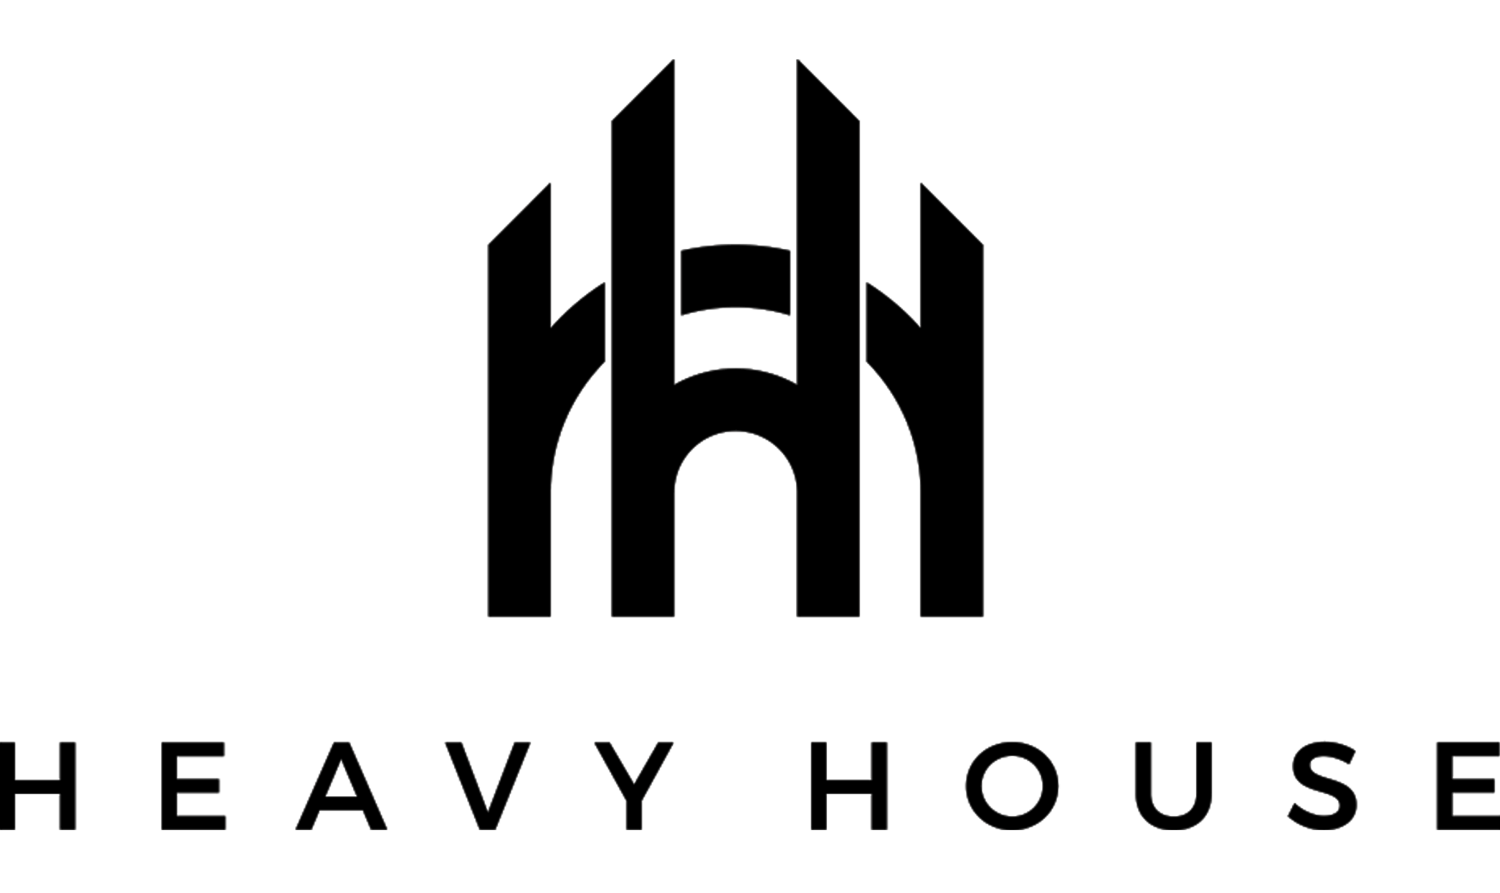 Heavy House